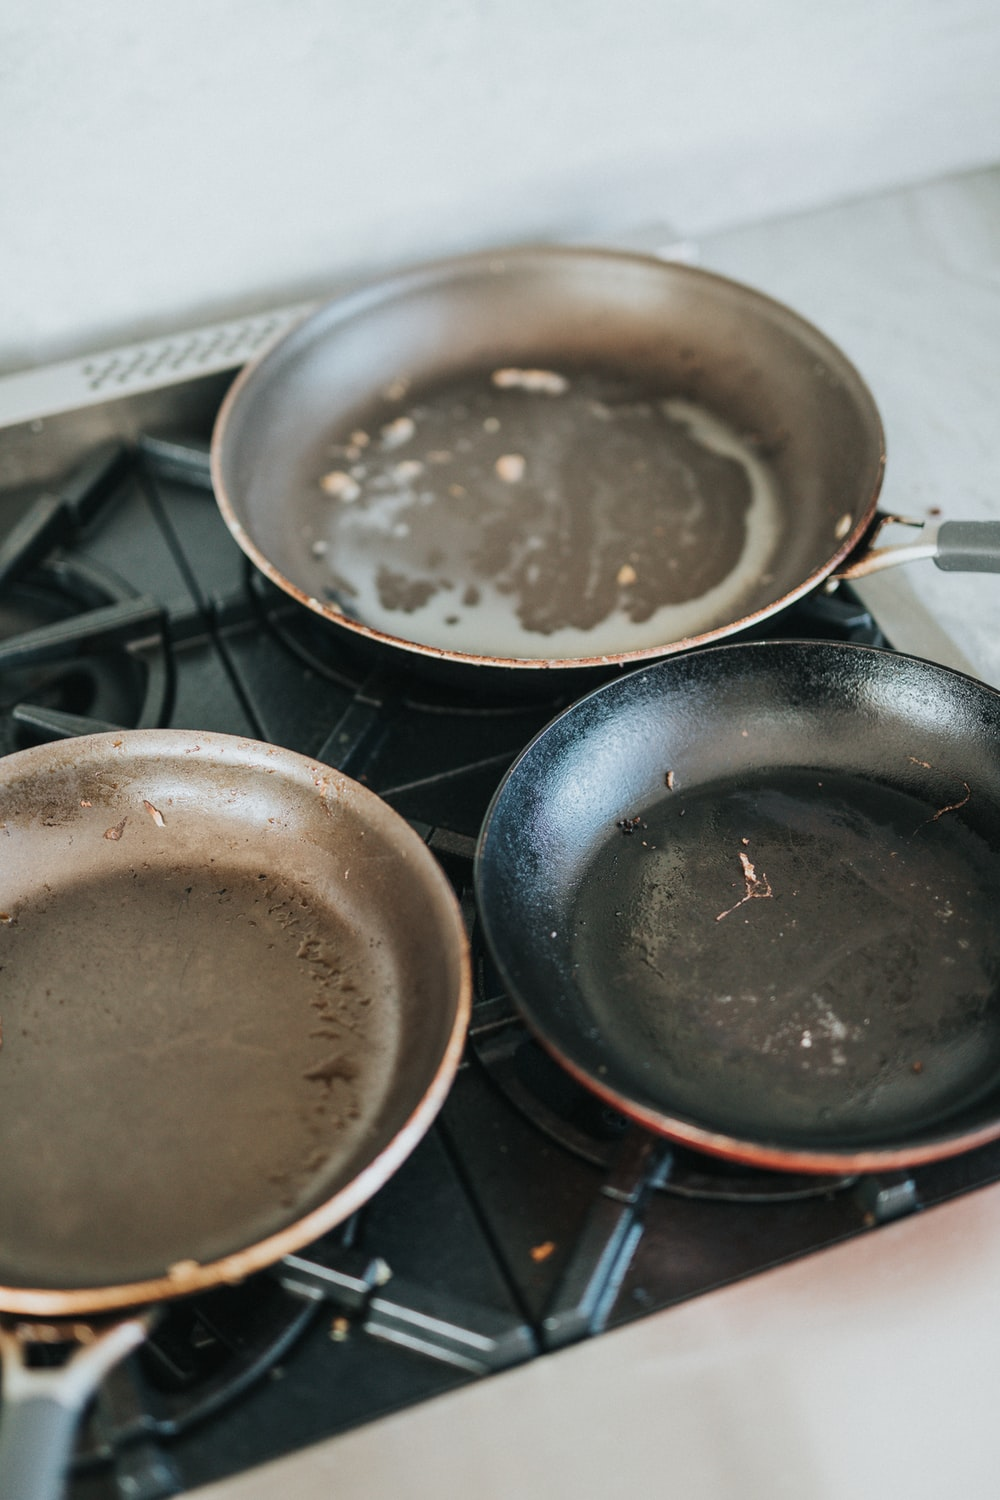 black frying pan on stove